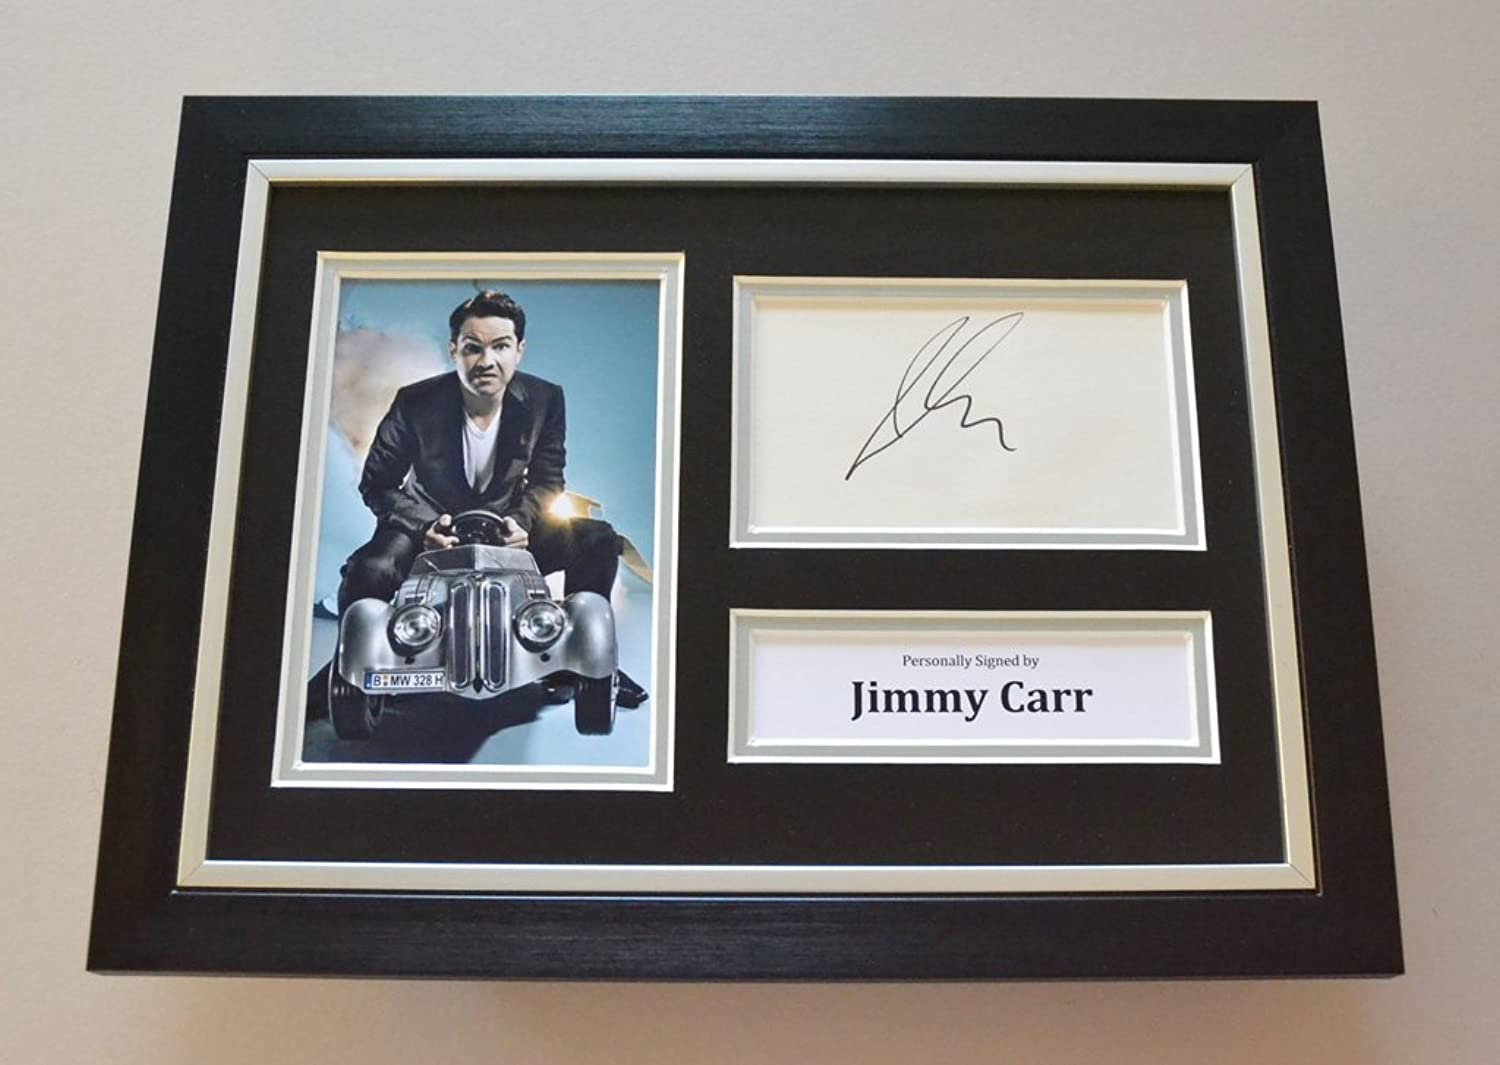 Jimmy Carr Signed A4 Photo Framed 8 Out of 10 Cats Autograph Display Memorabilia